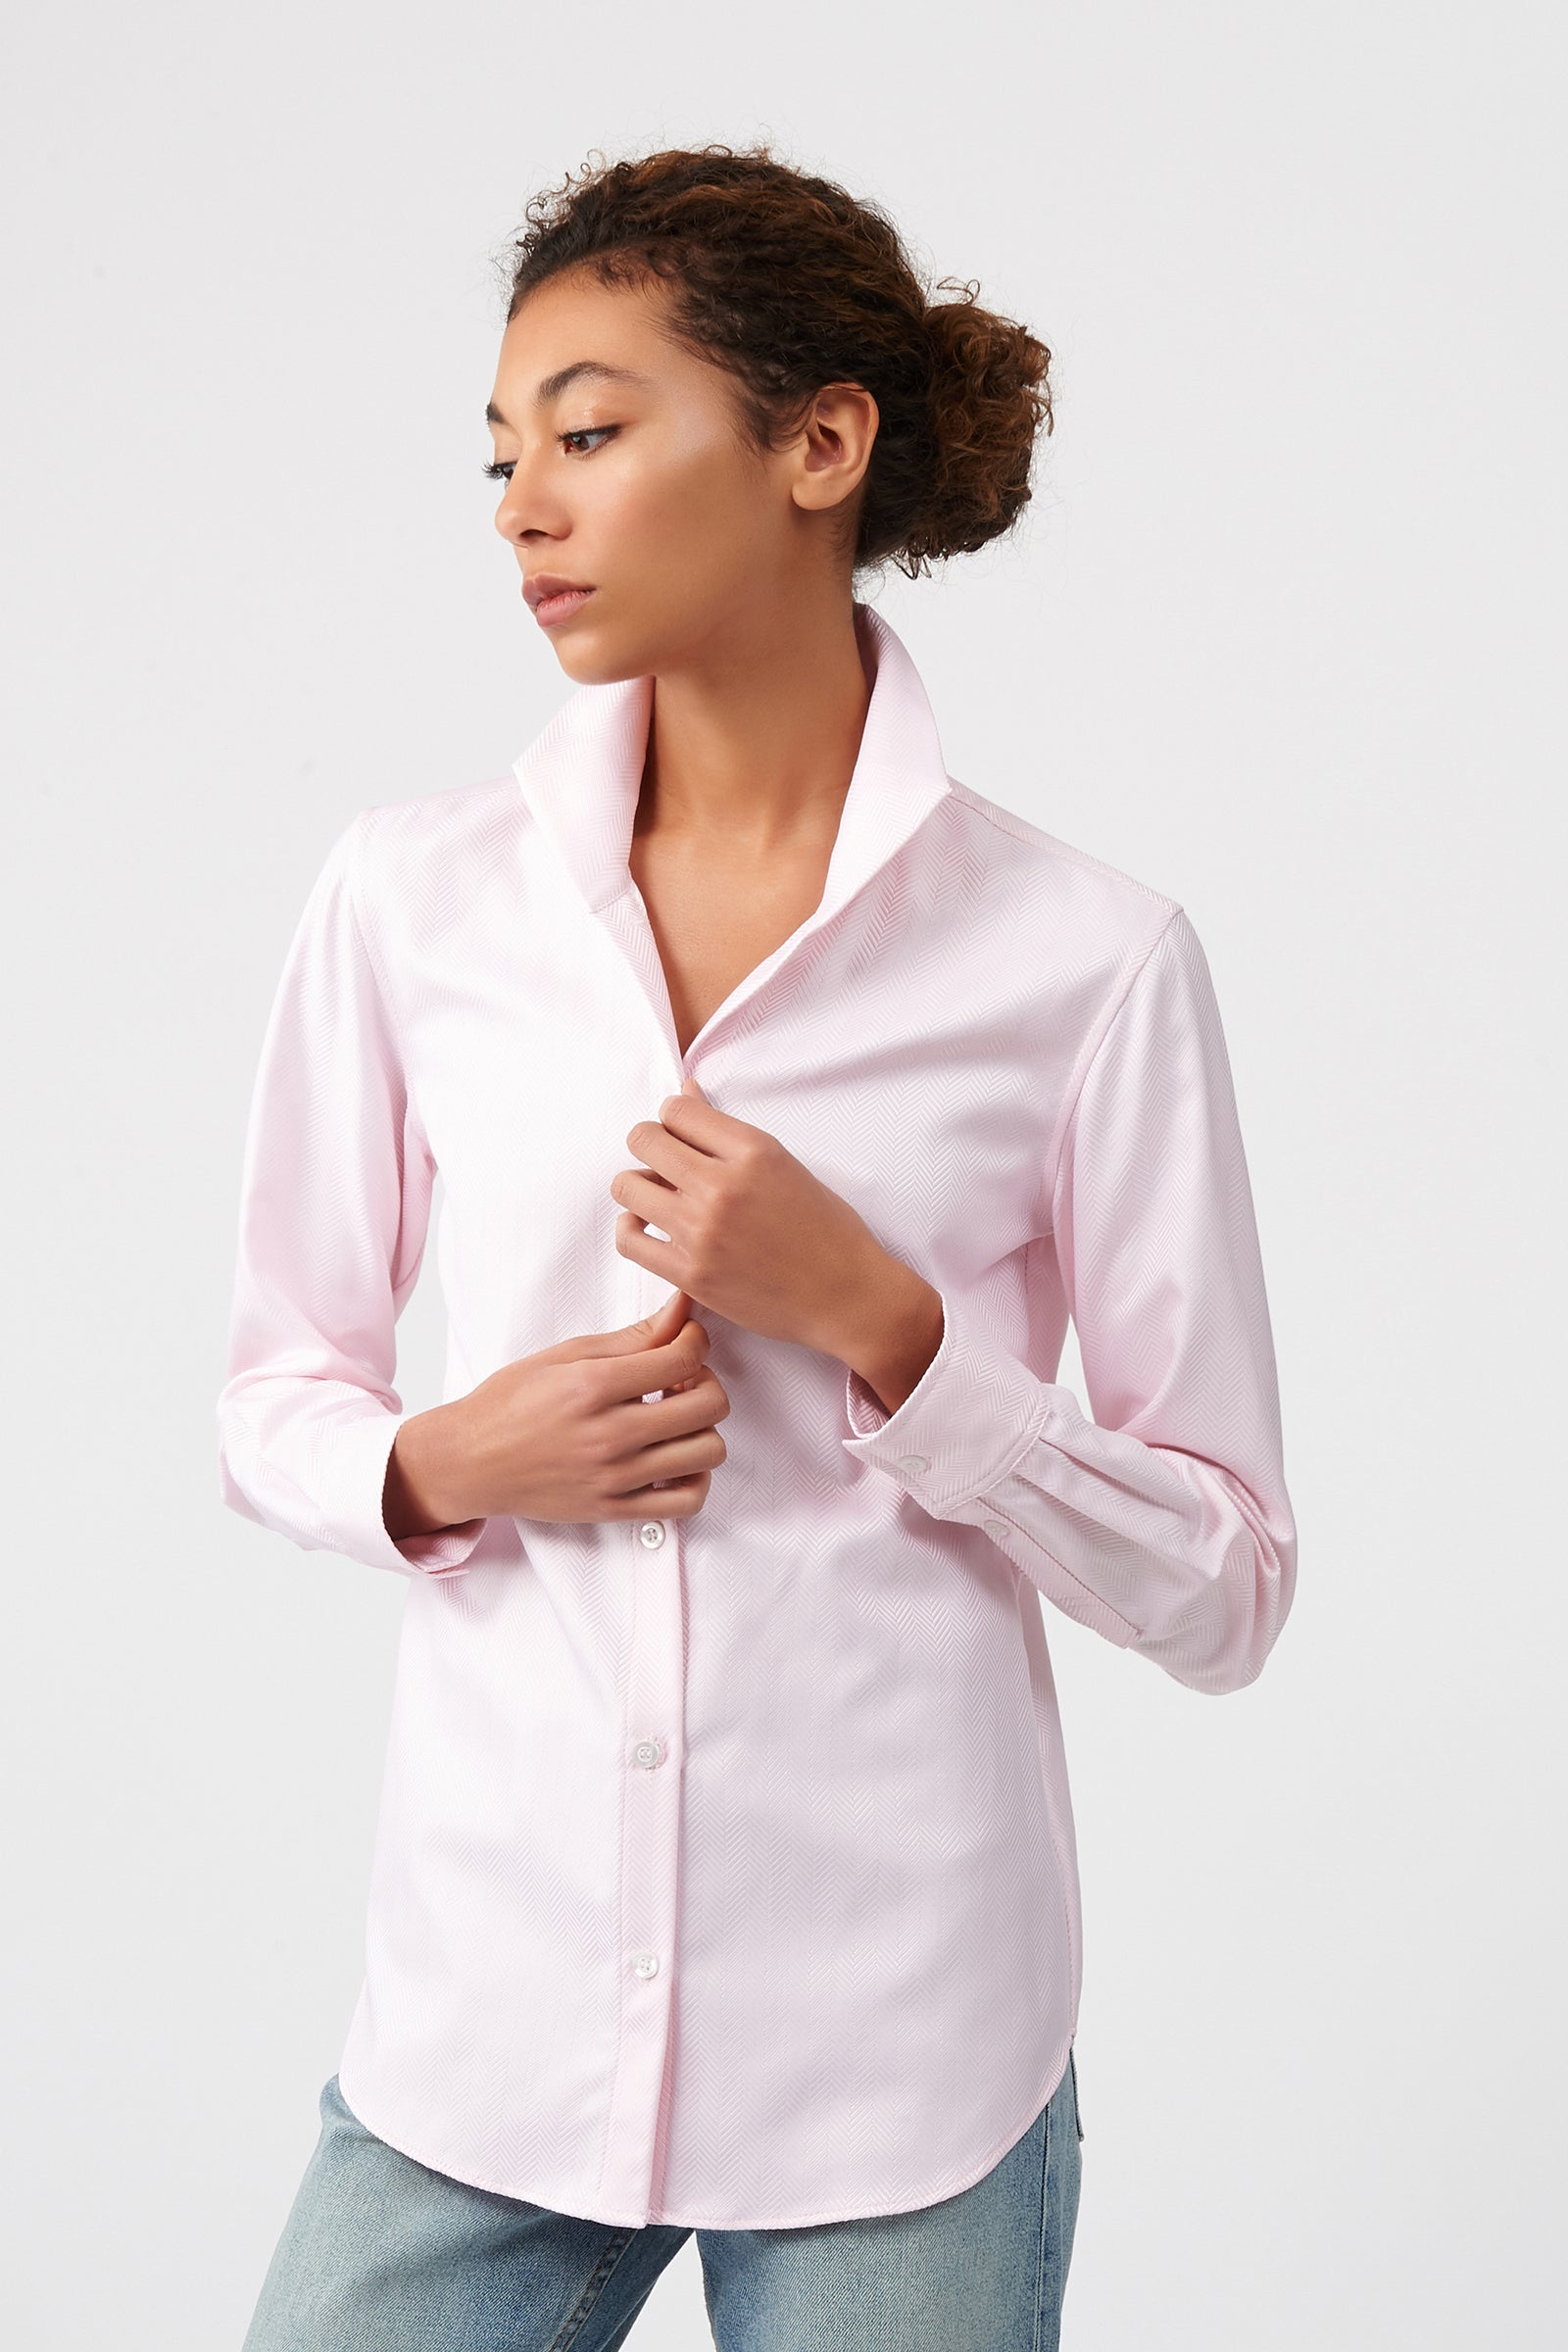 Kal Rieman Ginna Box Pleat Shirt in Pink Herringbone on Model Front View